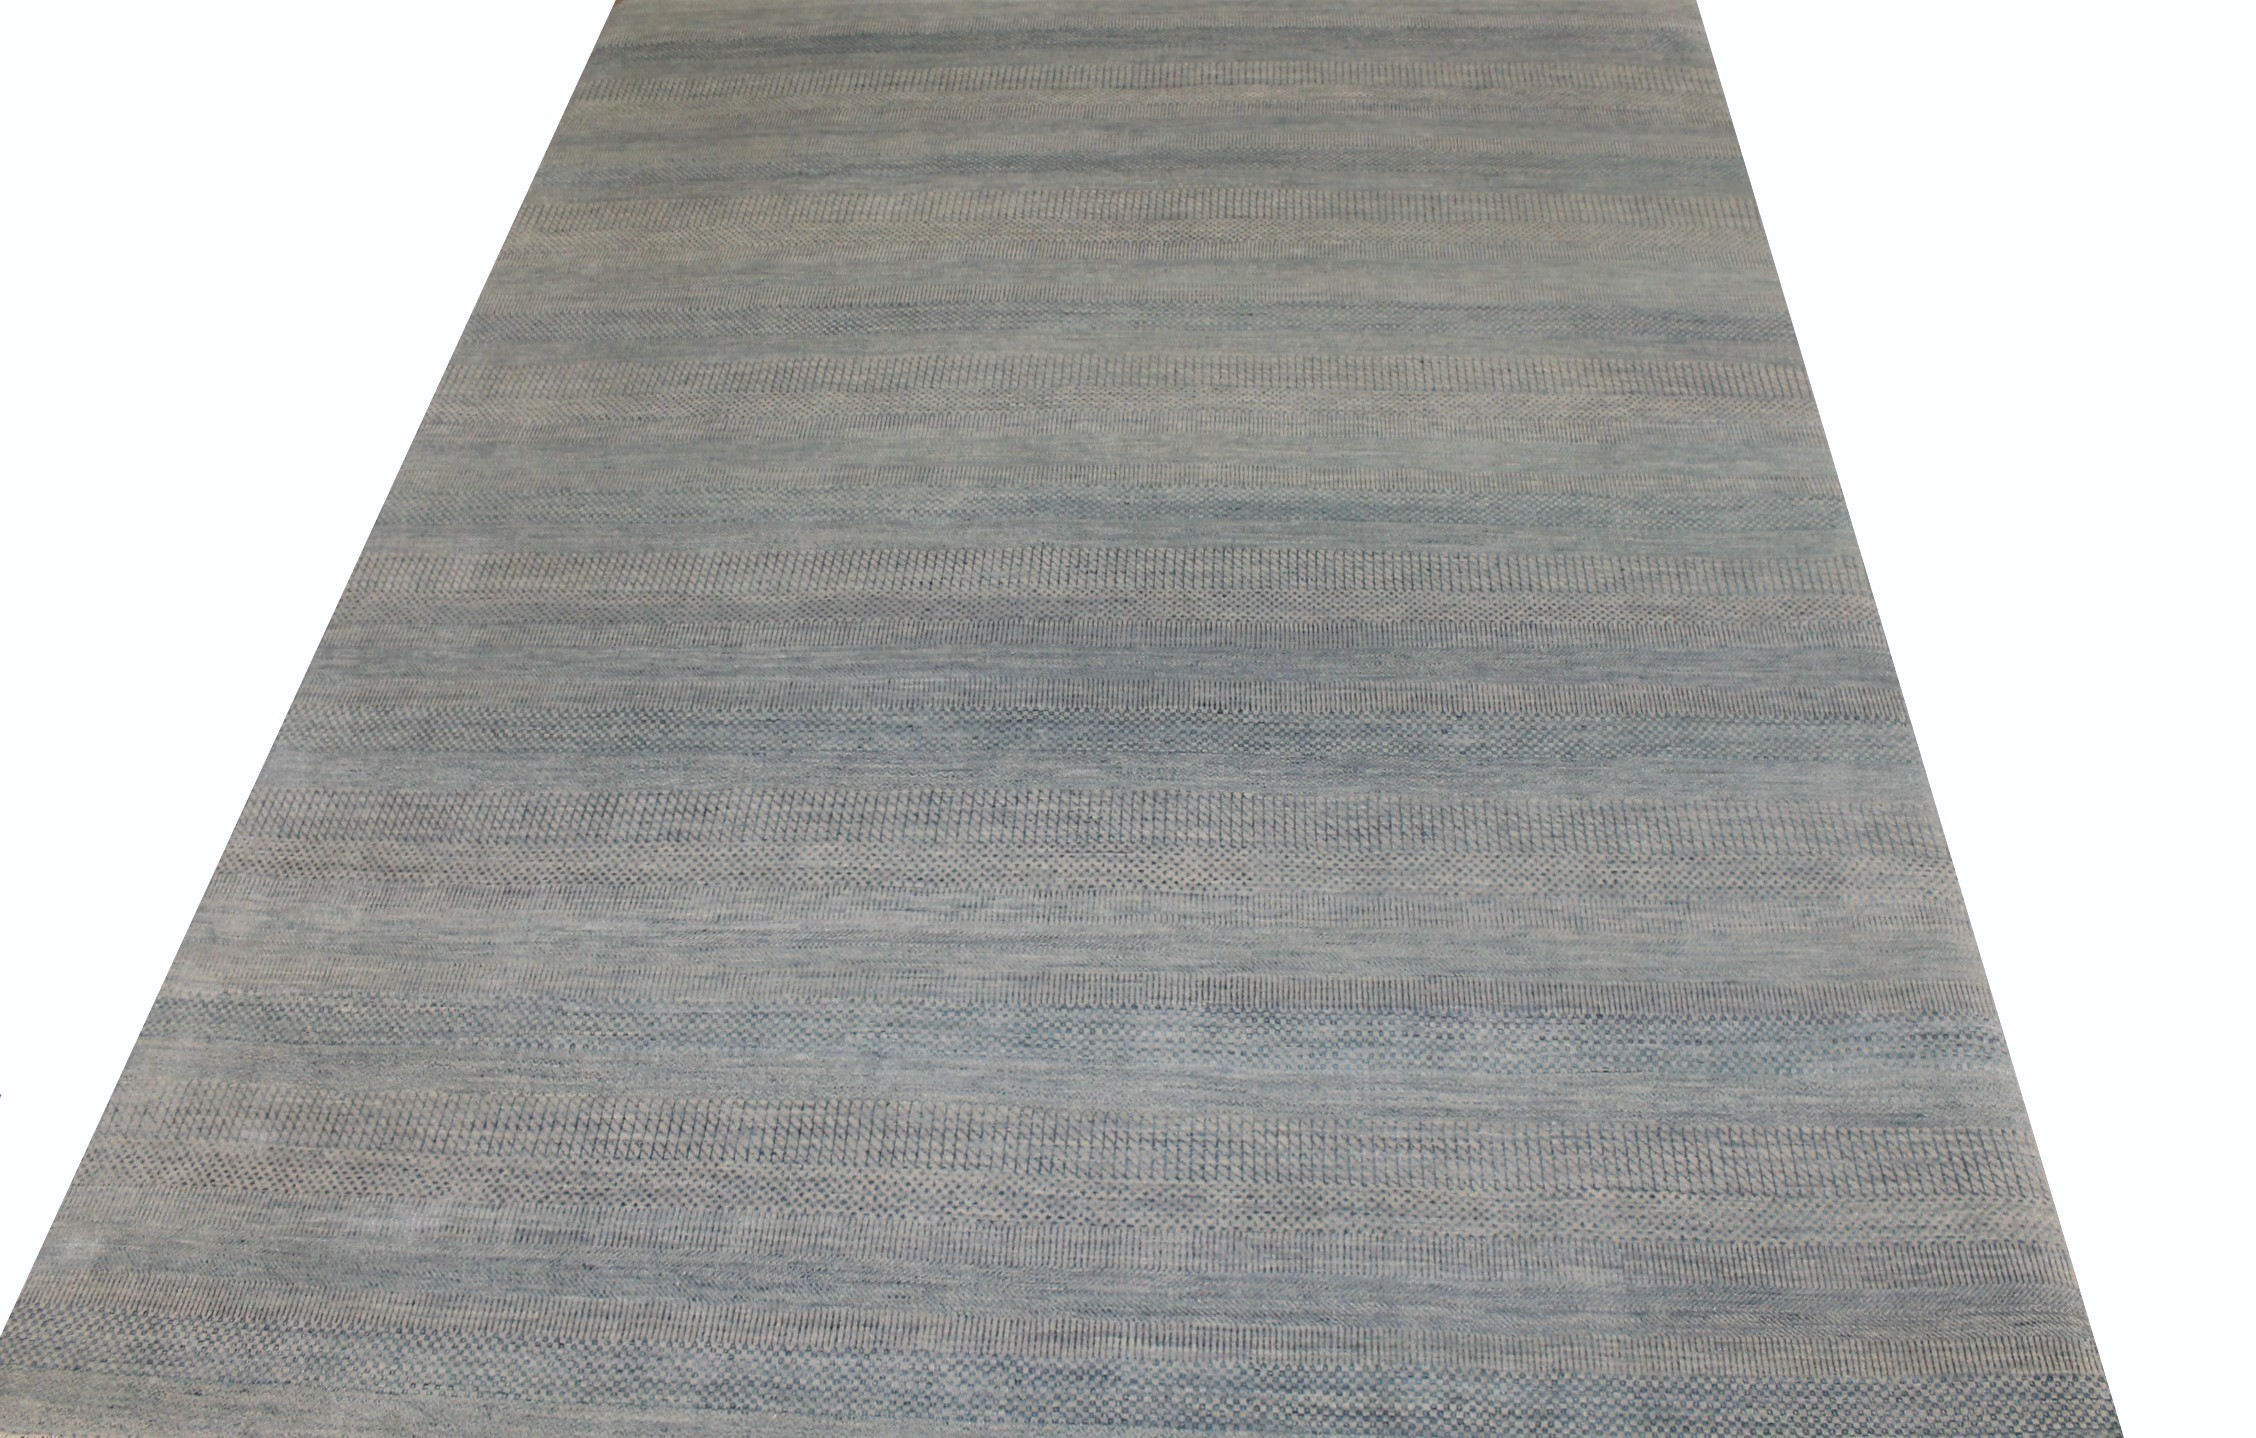 9x12 Contemporary Hand Knotted Wool Area Rug - MR022104